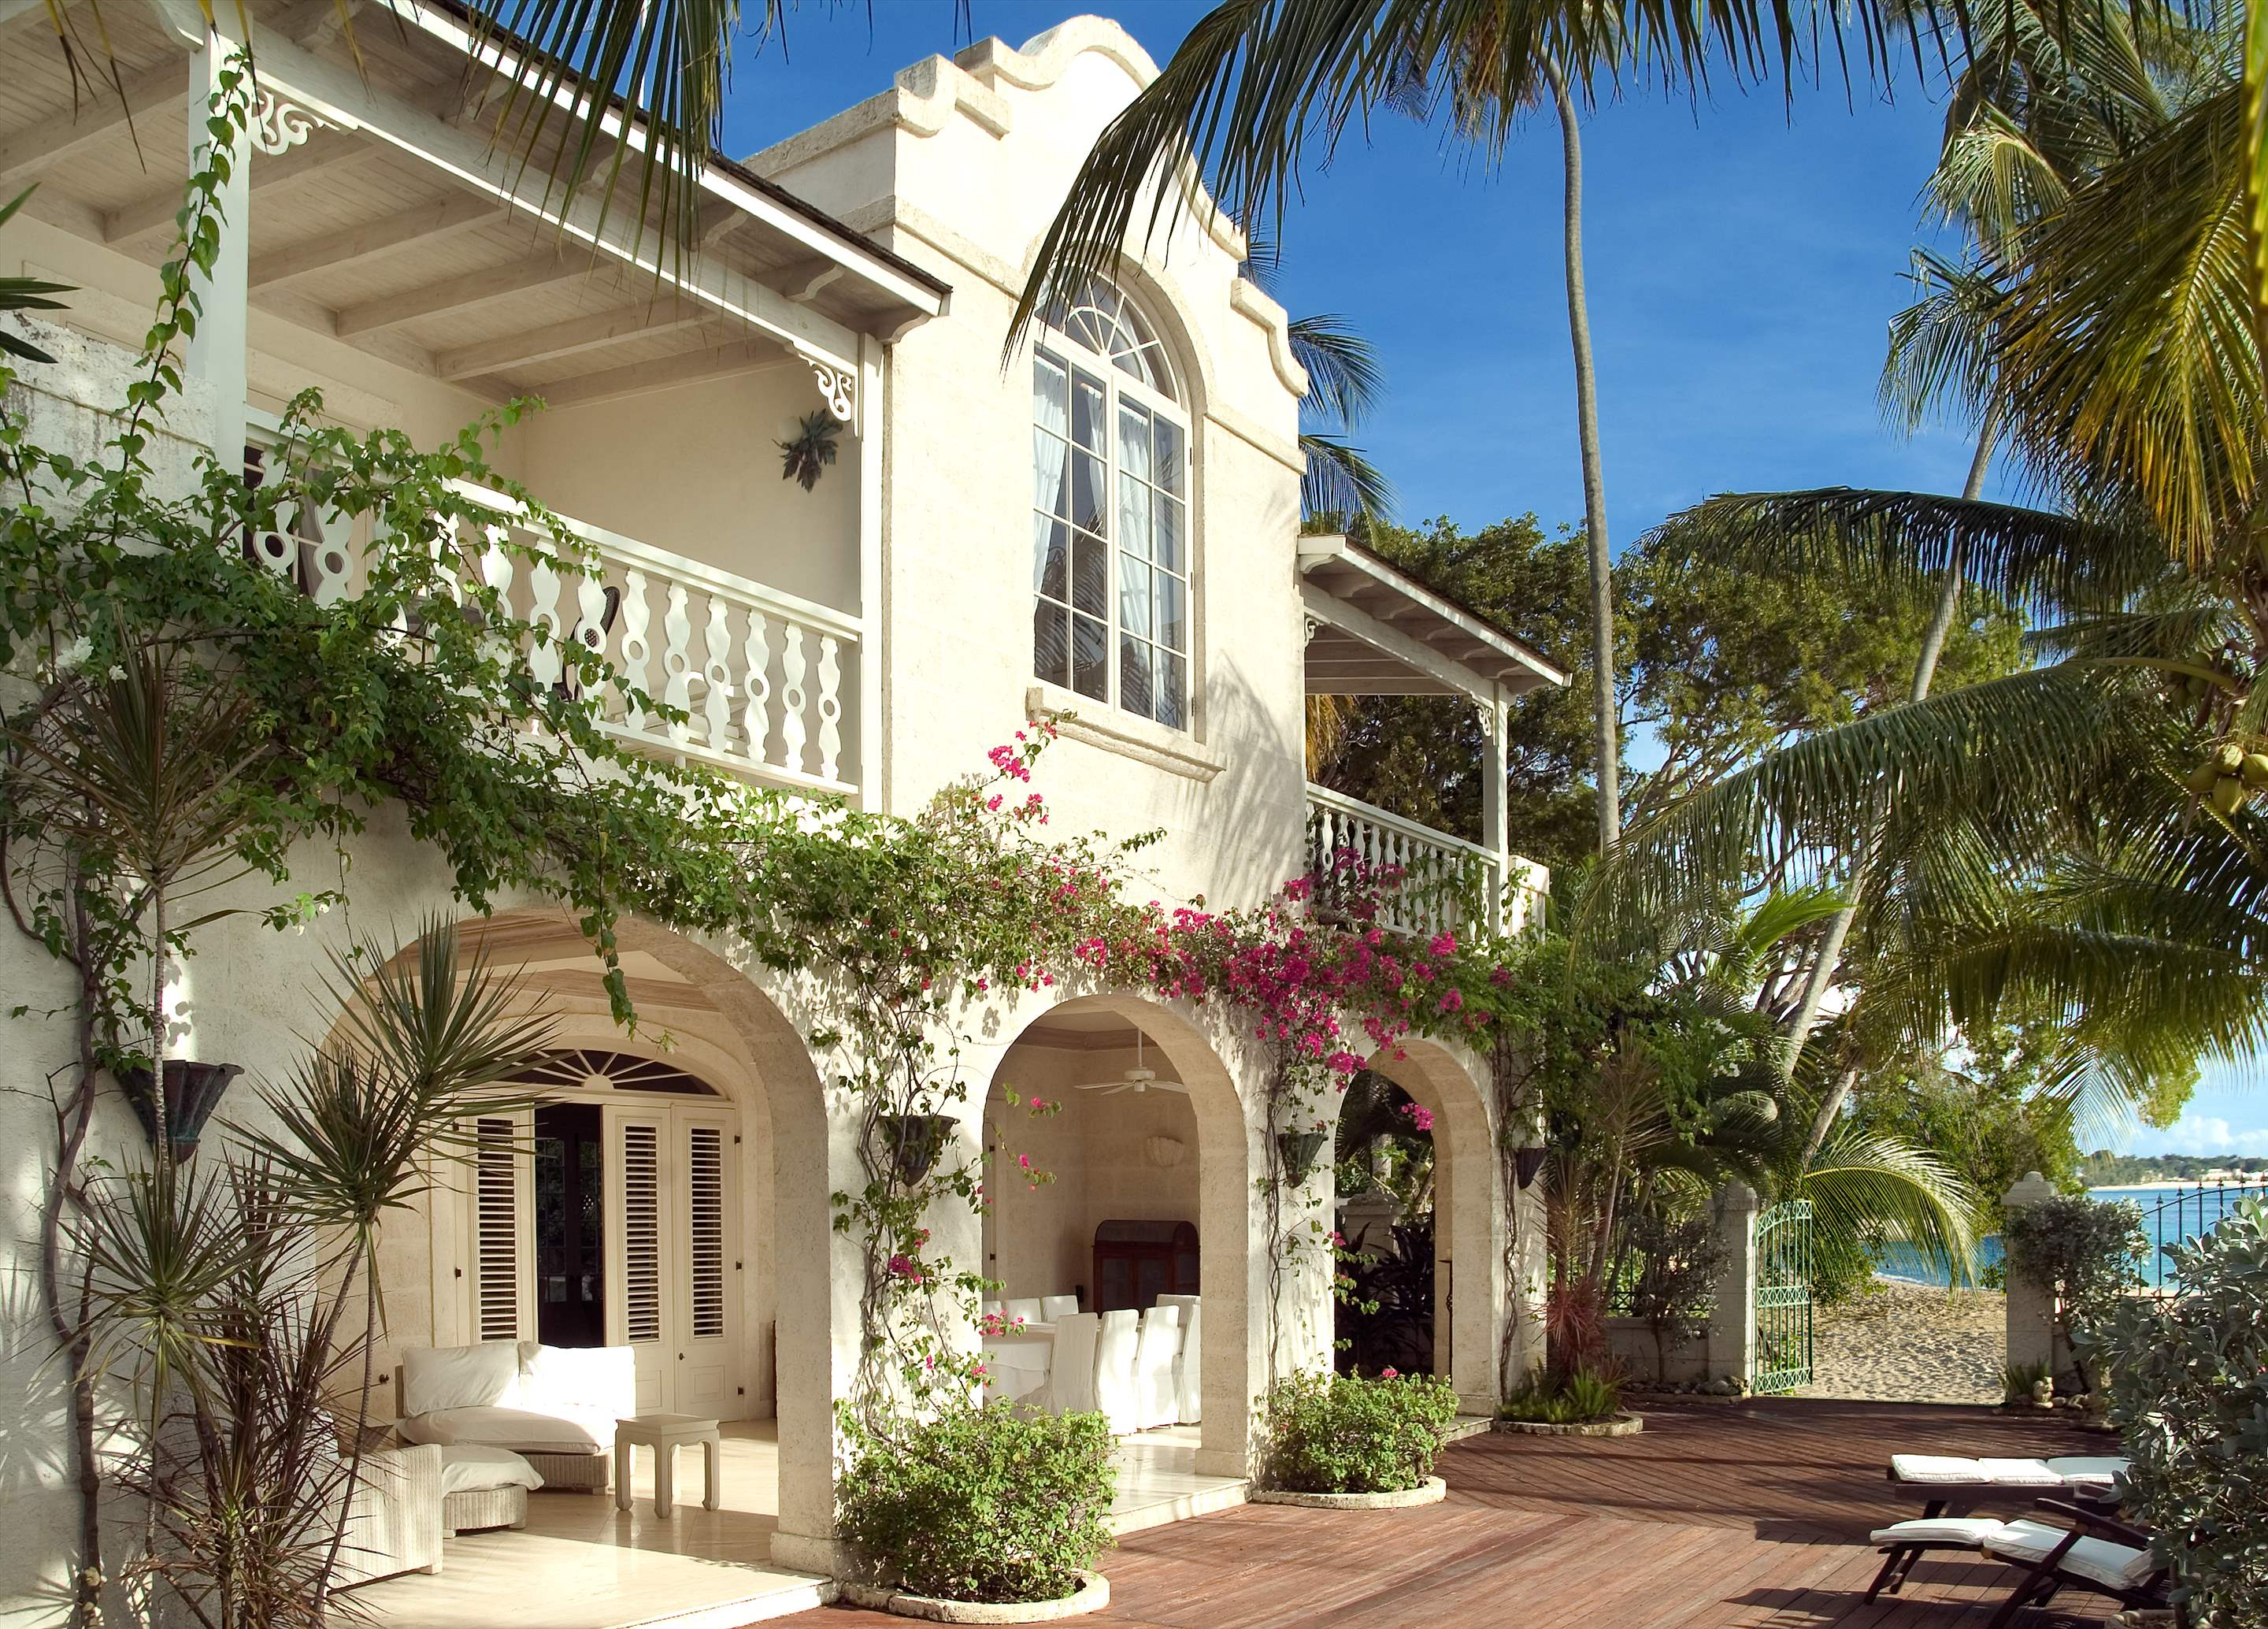 Caprice, 4 bedroom villa in St. James & West Coast, Barbados Photo #6